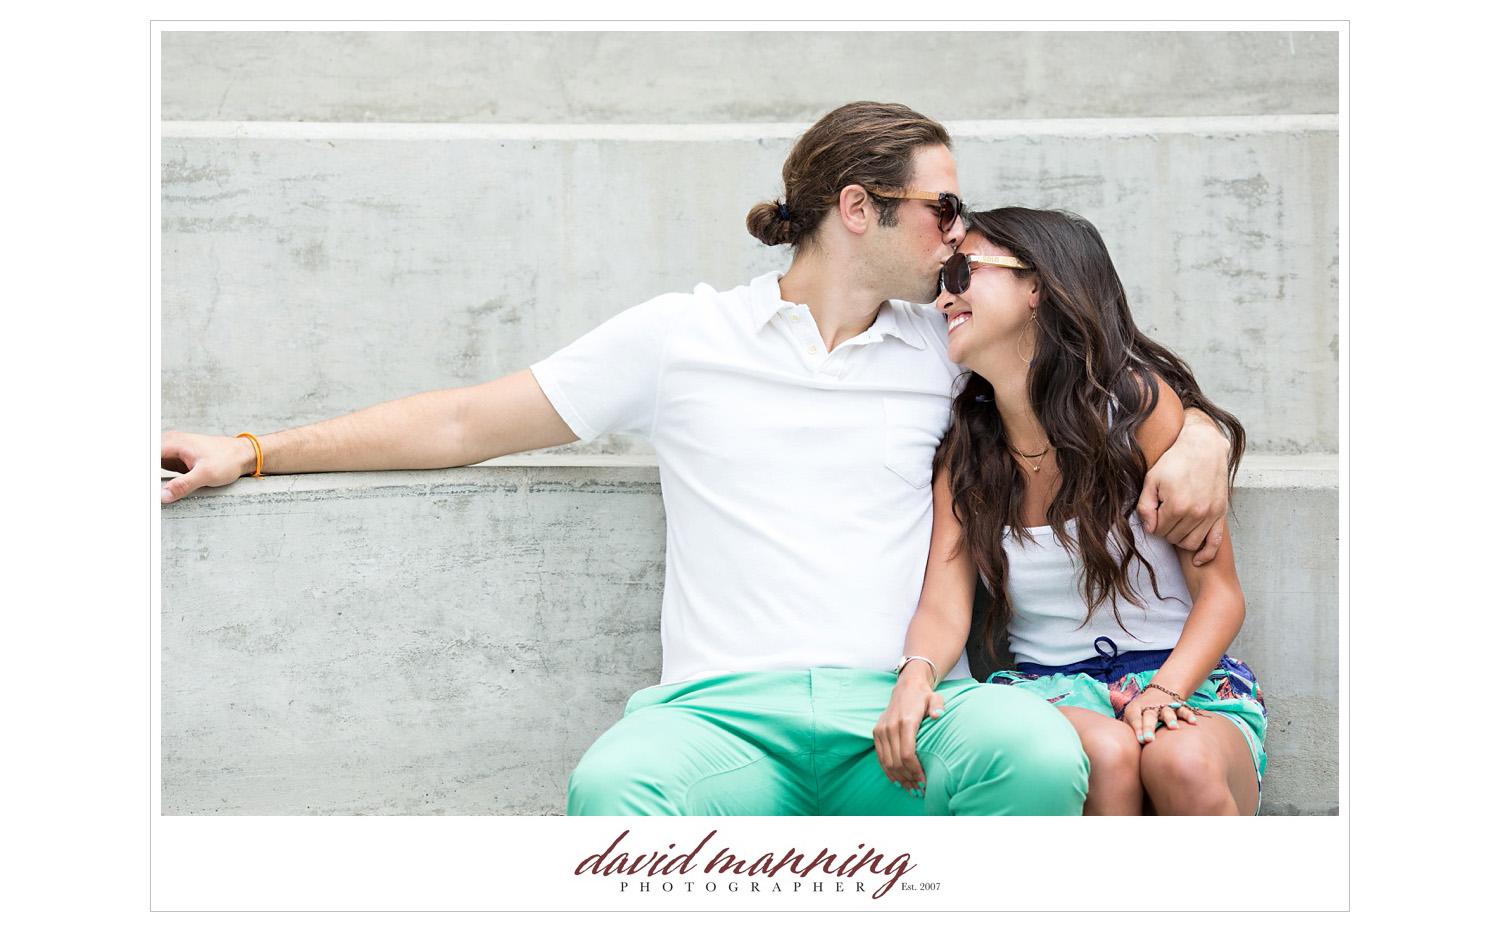 SOLO-Eyewear--Commercial-Editorial-Photos-David-Manning-Photographers-0013.jpg